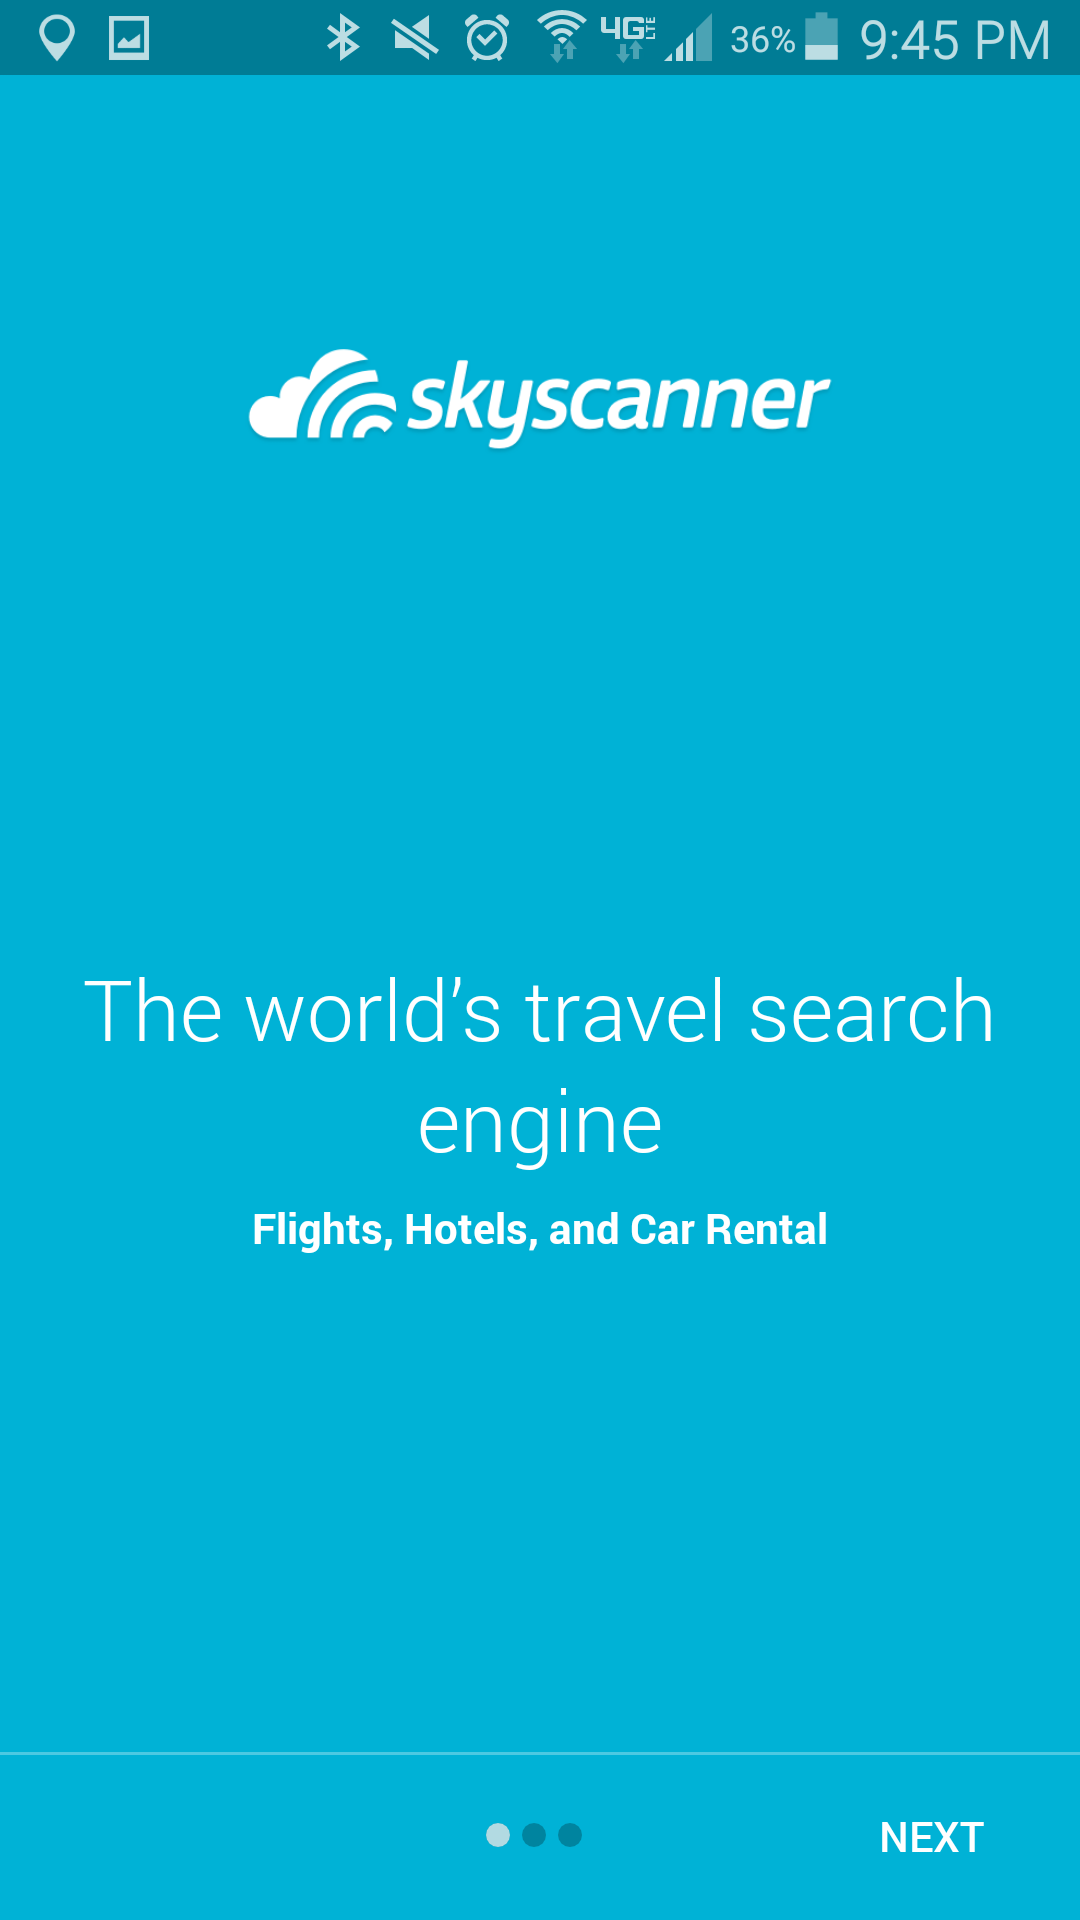 The First Page Of Skyscanner App Shows Recognisable Logo And What Company Is Used For Flights Hotels Car Rentals